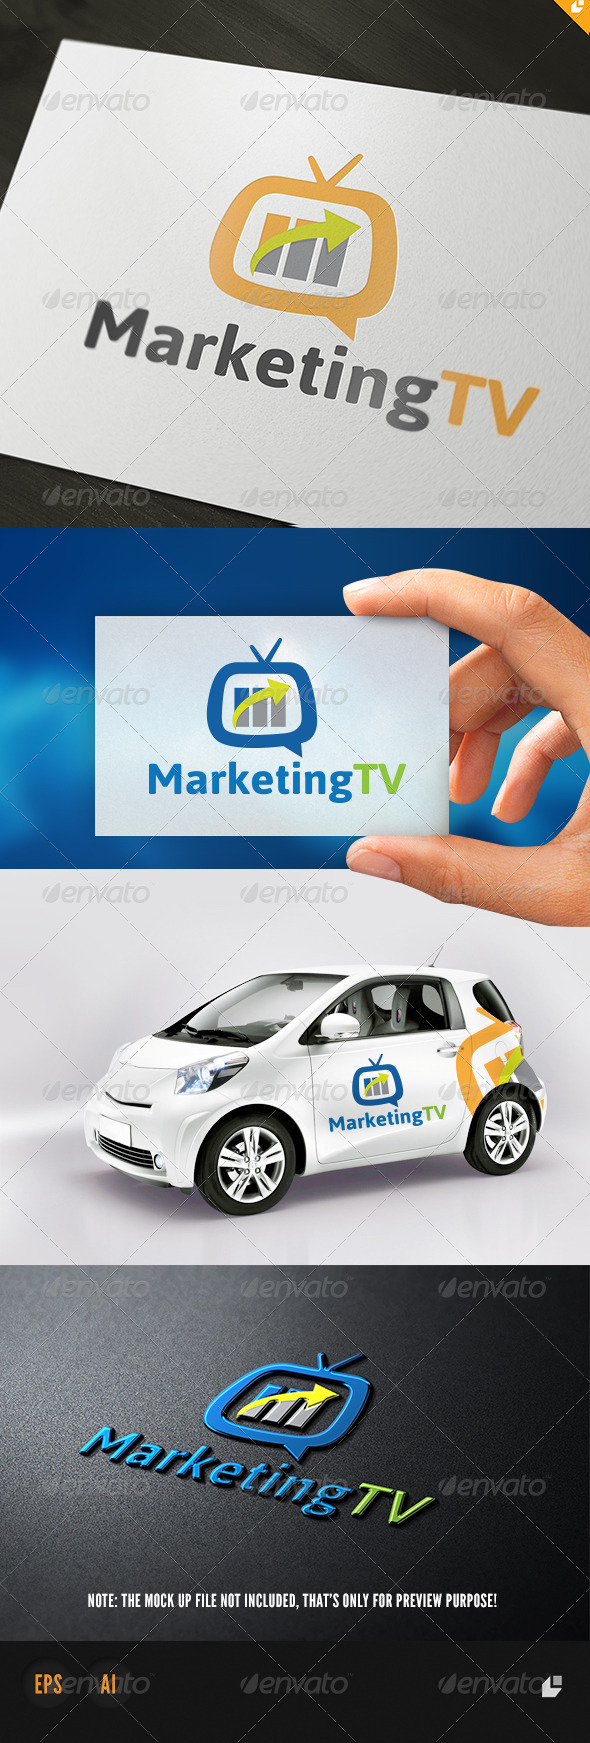 Marketing TV Logo - Objects Logo Templates